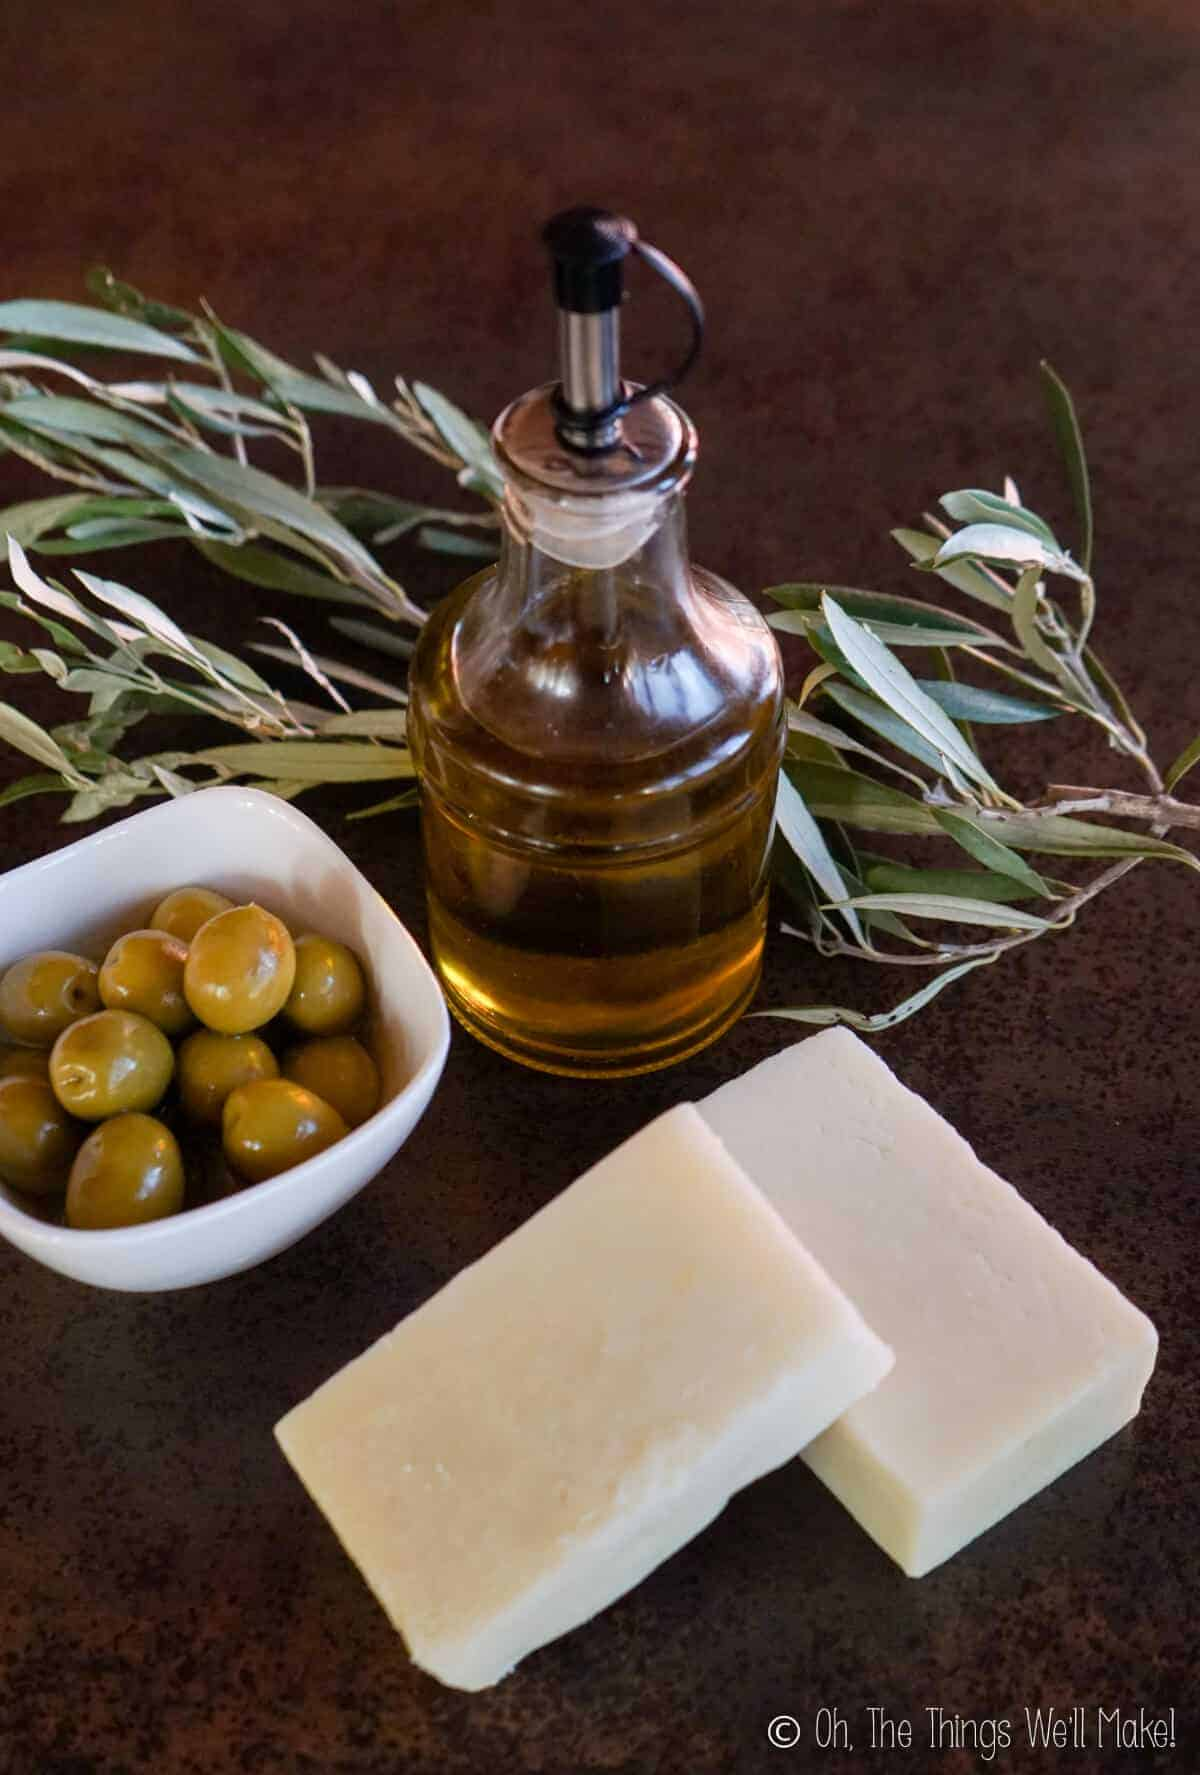 Olive oil in a bottle near a bowl of olives and 2 bars of Castile soap